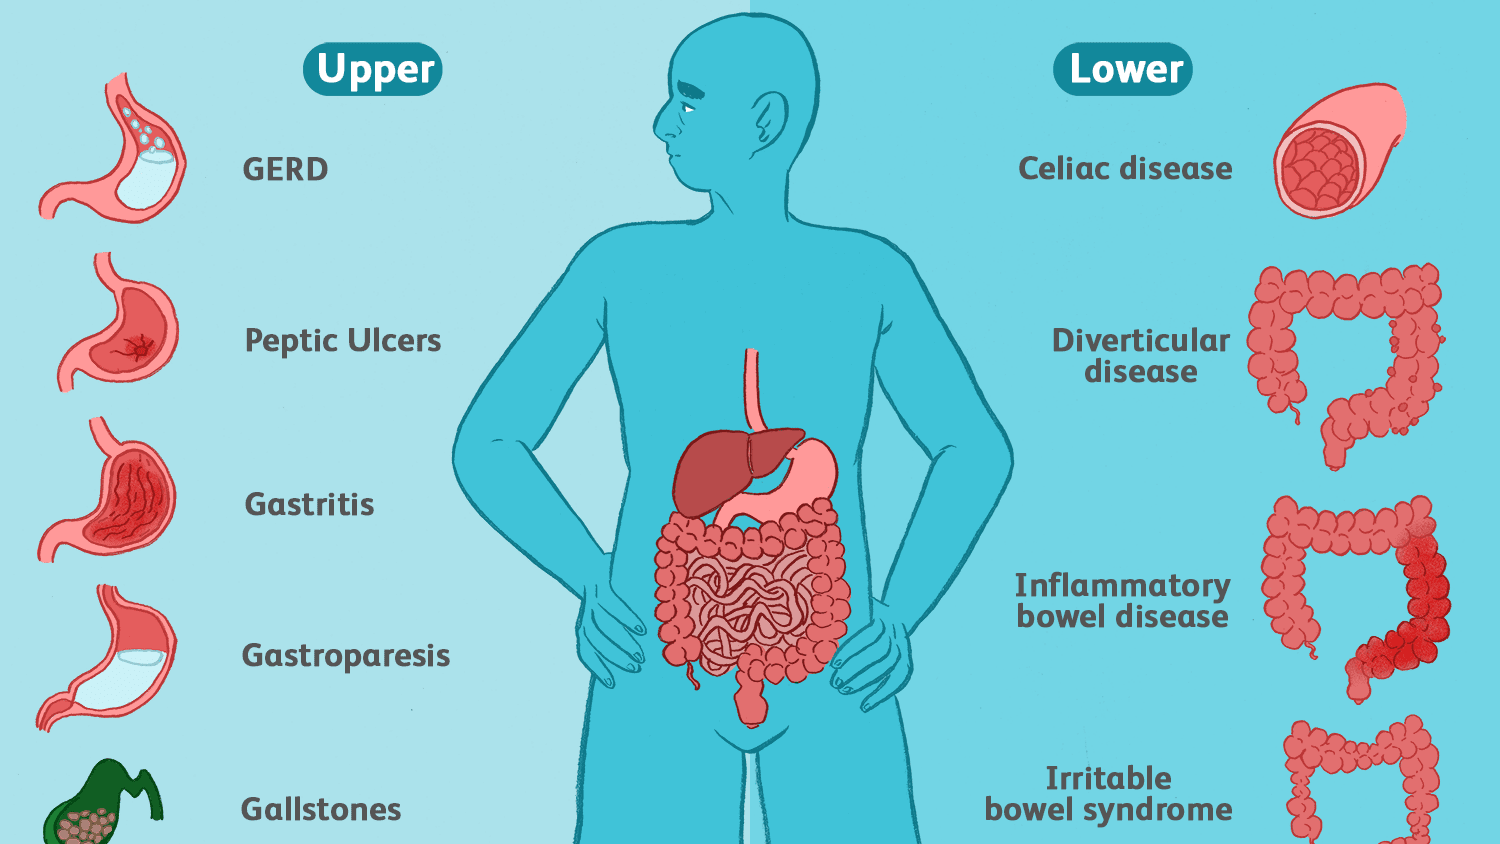 Symptoms of Common Stomach and Digestive Problems